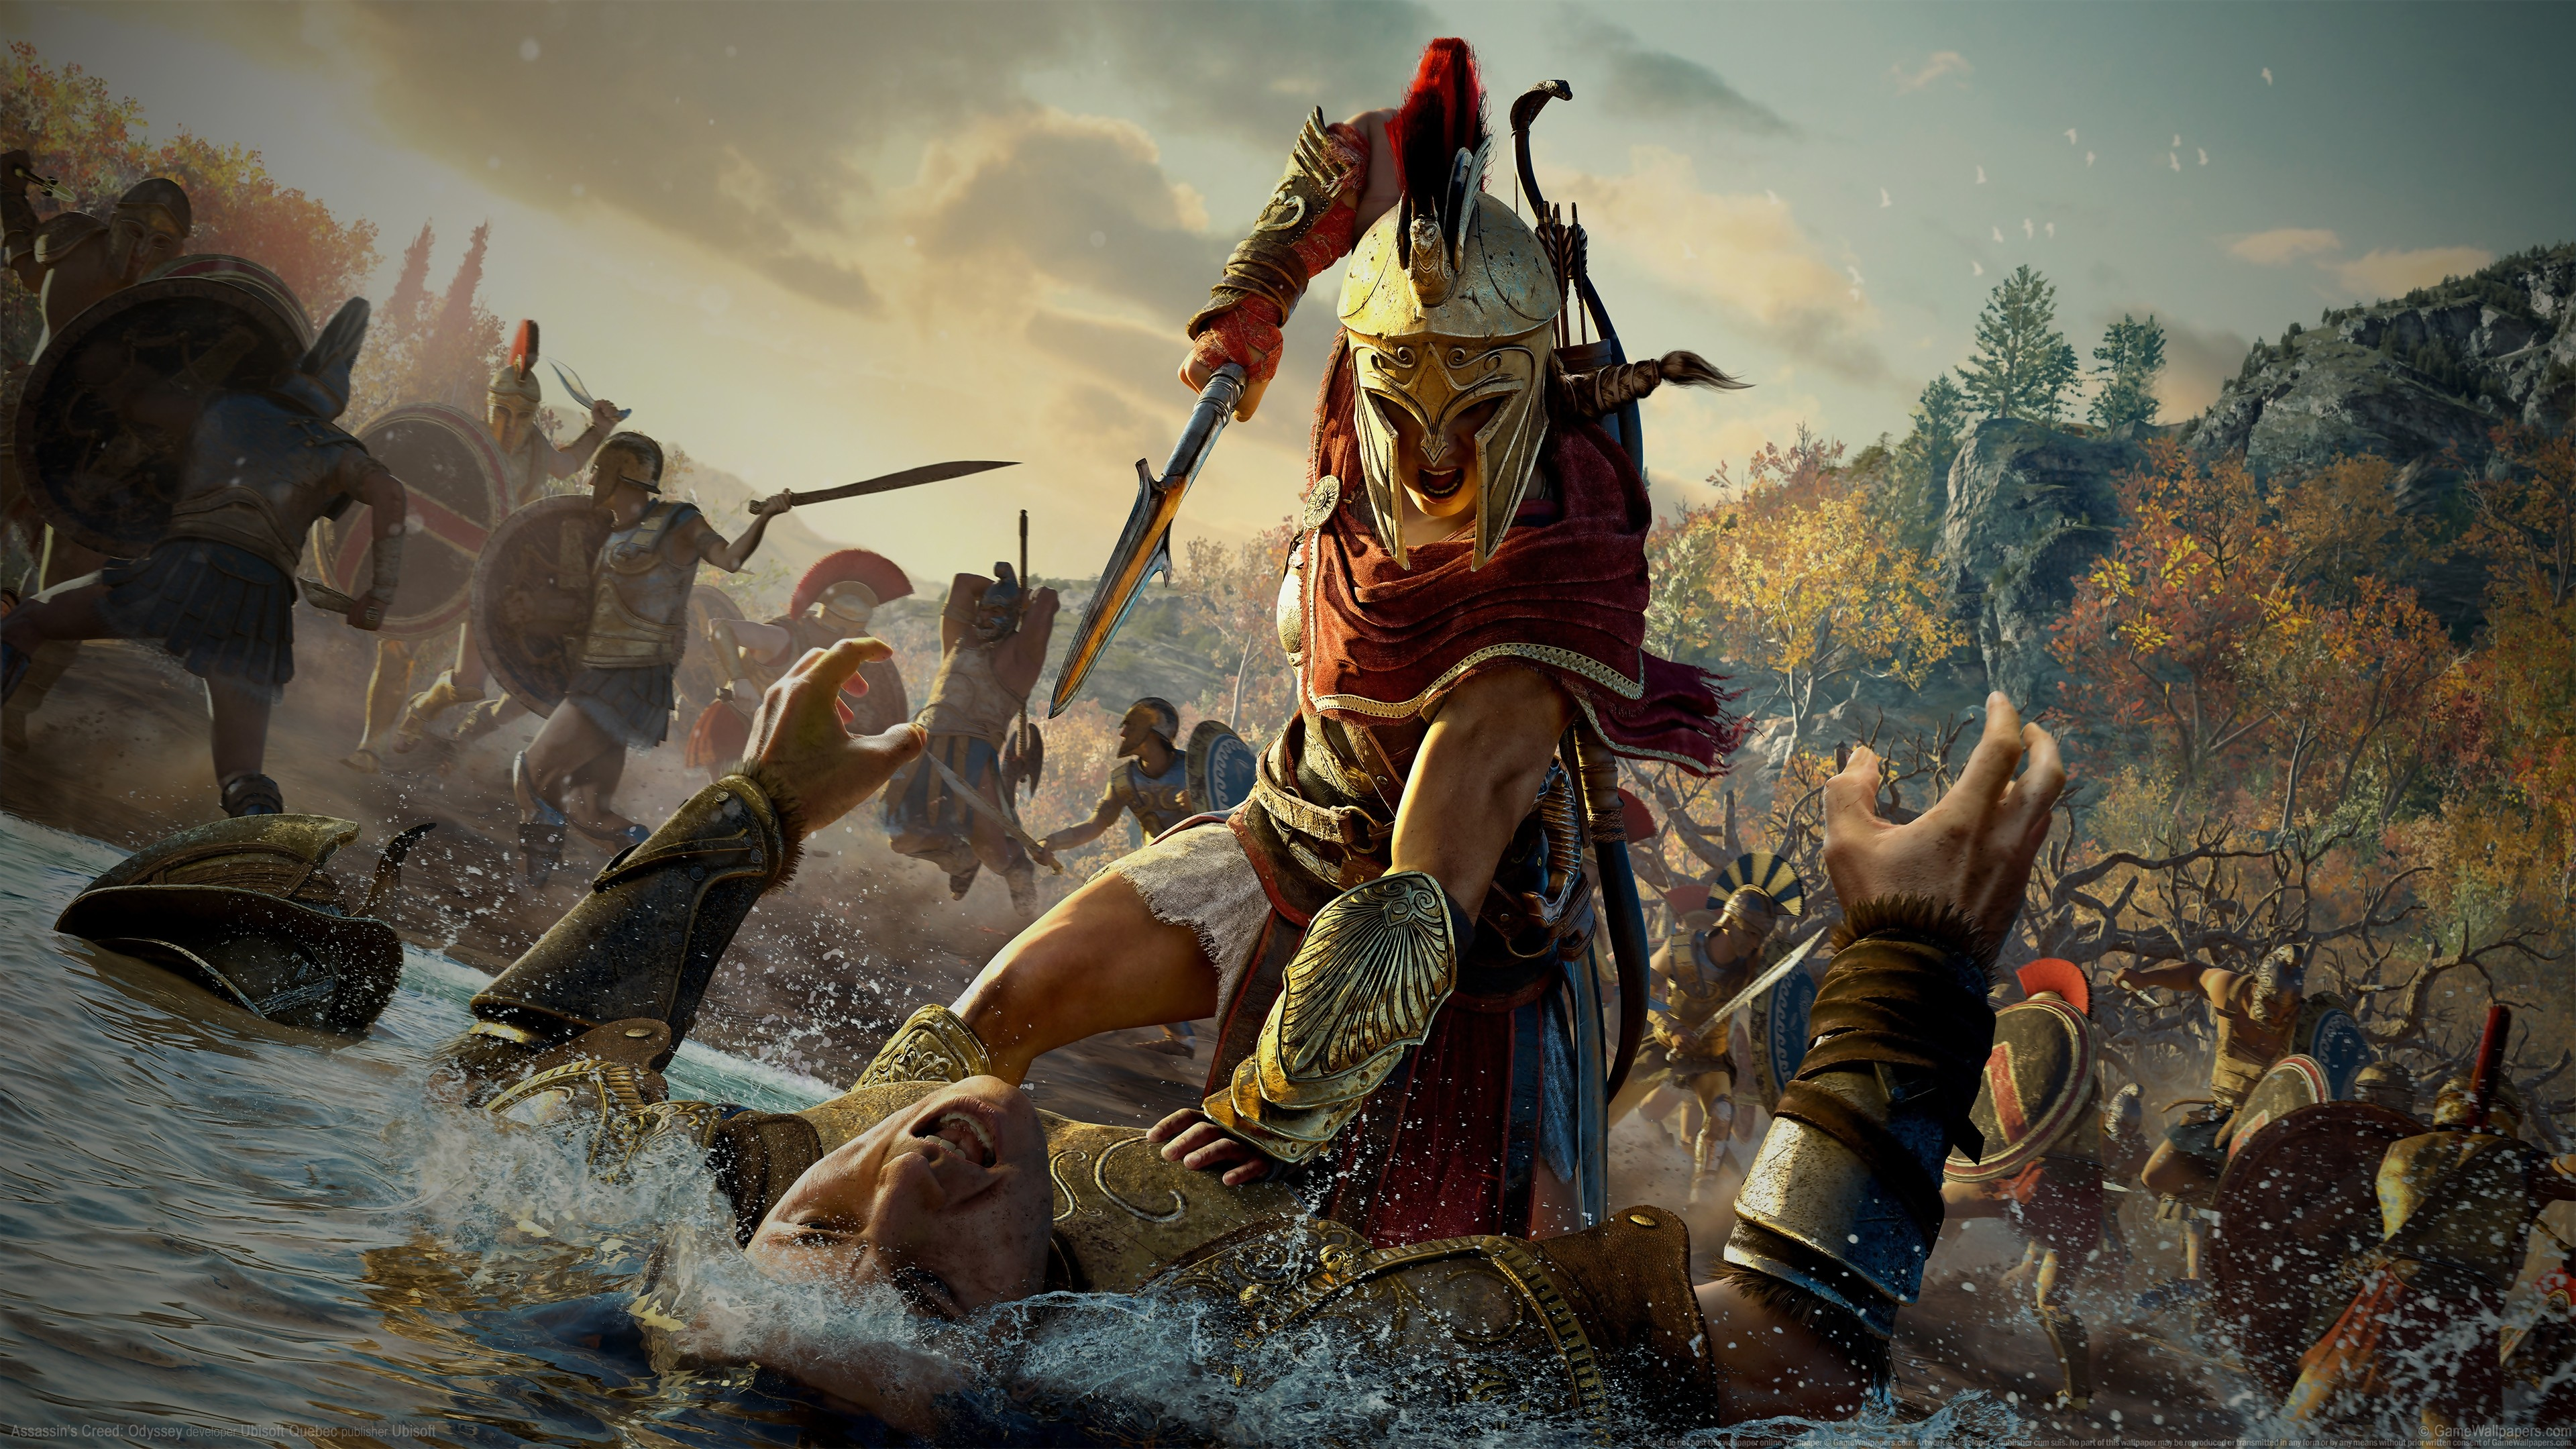 This Assassins Creed Odyssey Sale is a Steal at $20